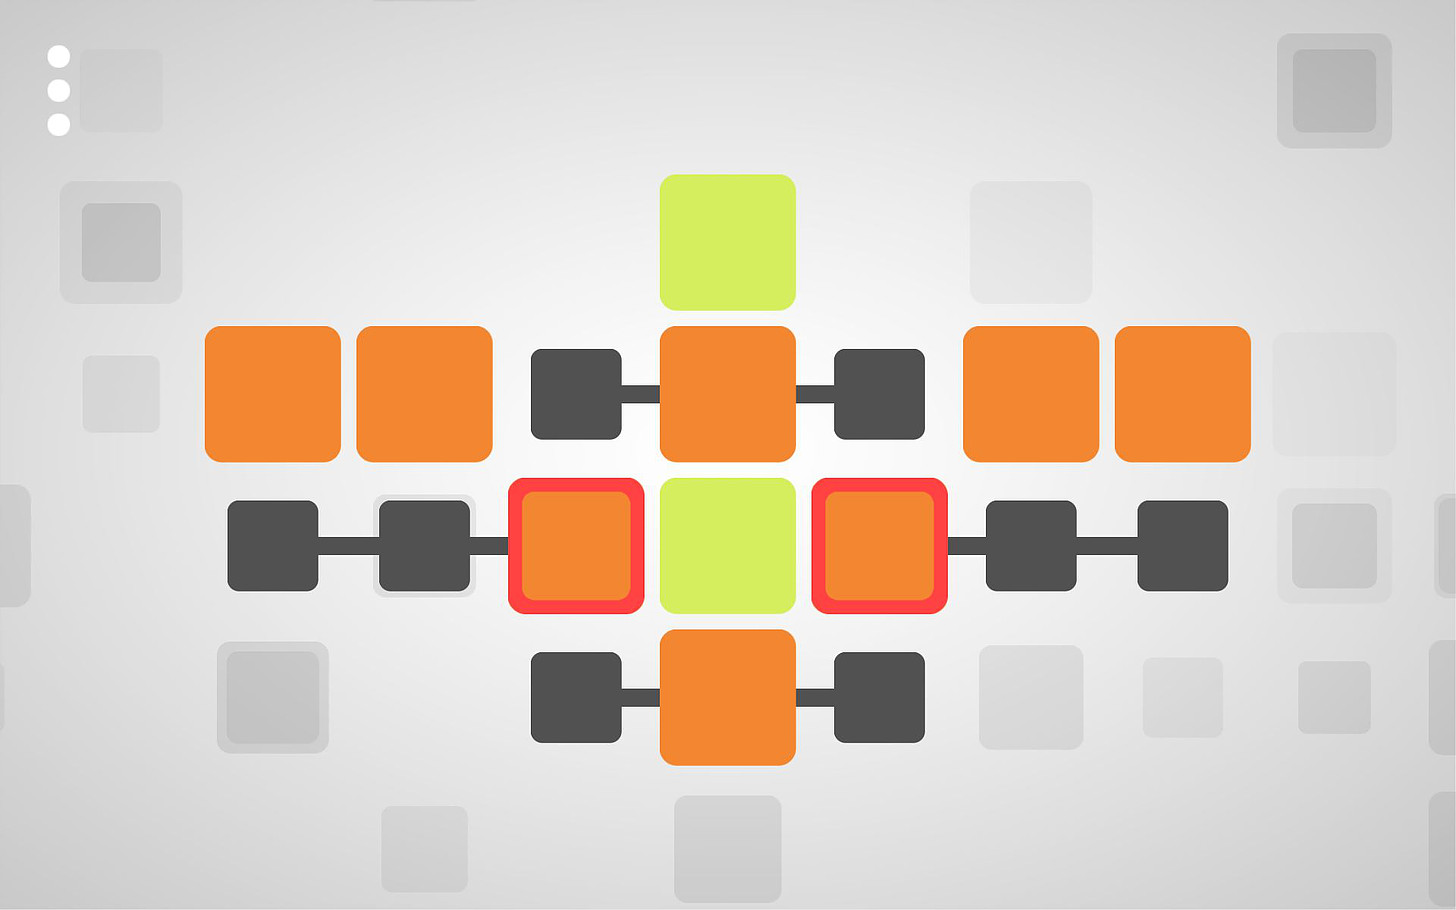 Tiles - Relaxing Puzzle Game